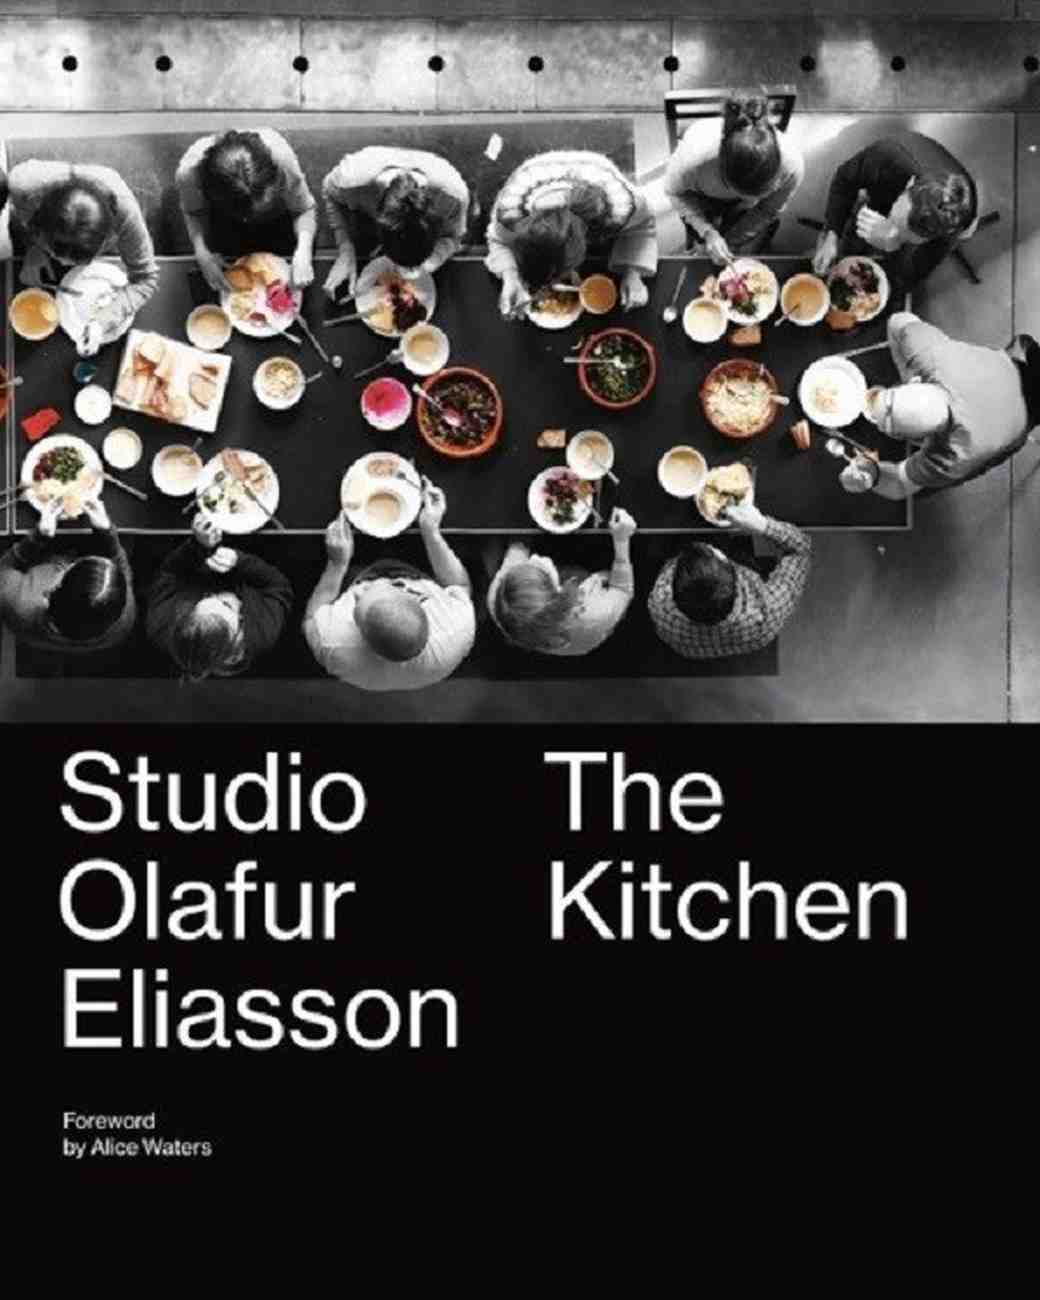 The Kitchen by Olafur Eliasson